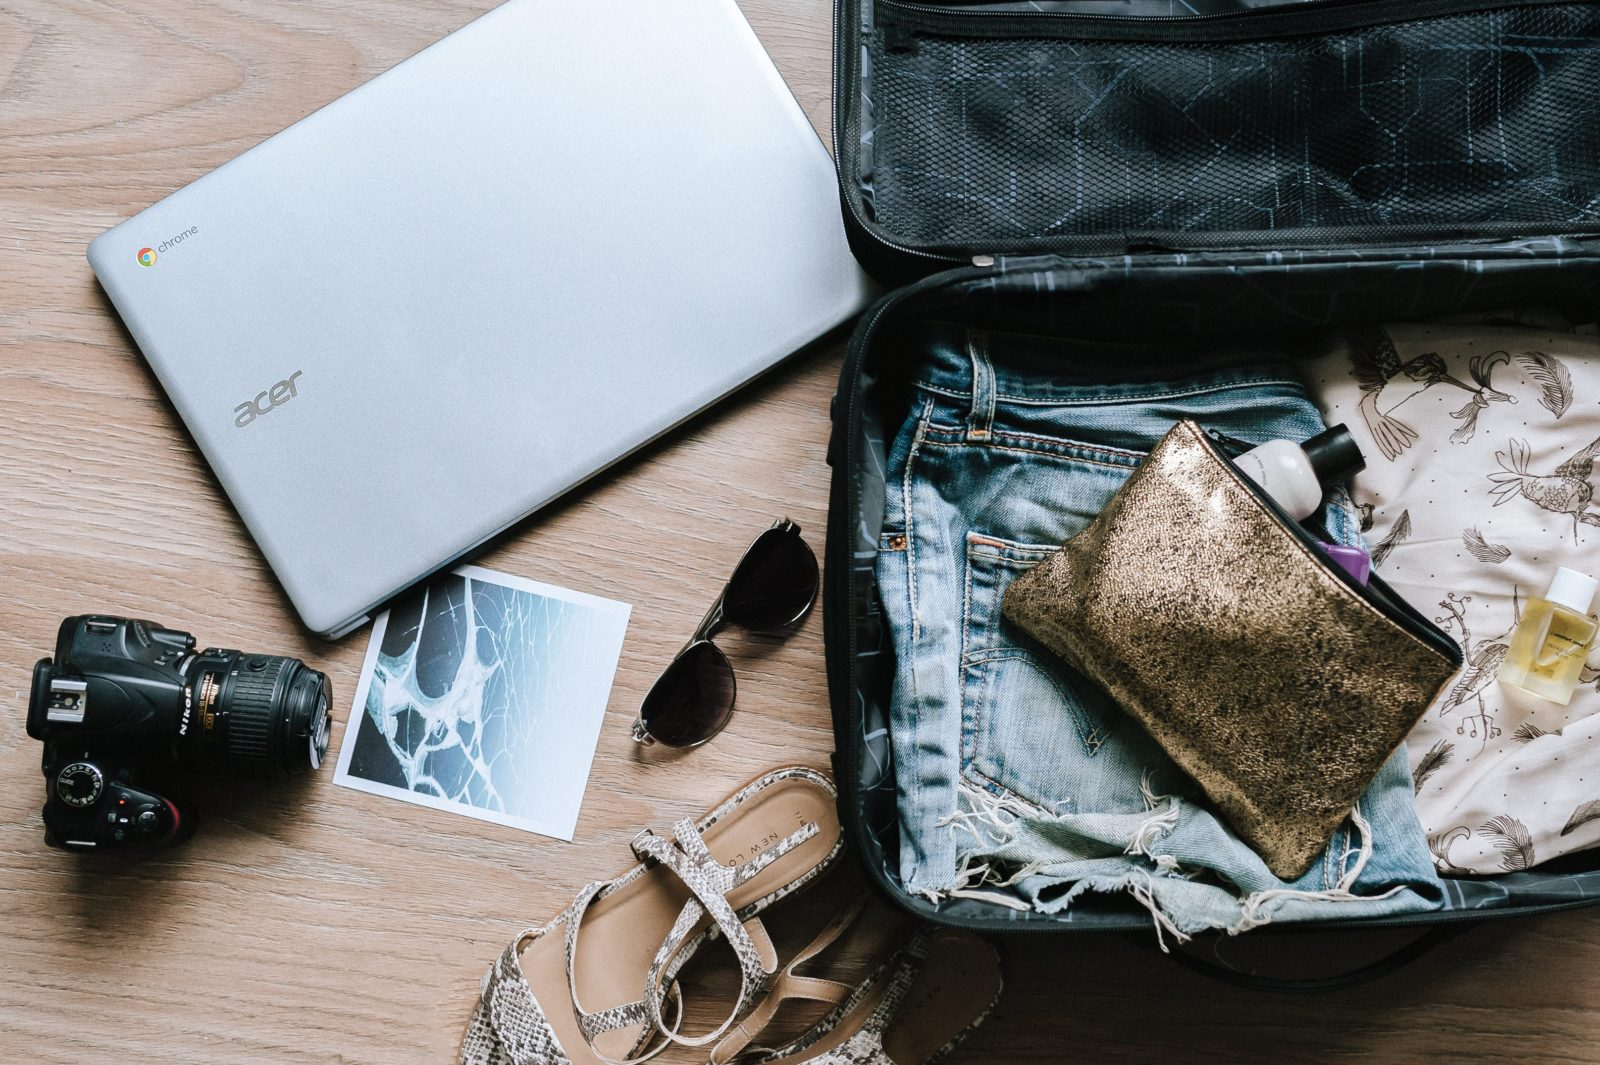 An open suitcase being packed for a summer vacation in Paris with a laptop, camera, sandals, sunglasses and other summer clothes.